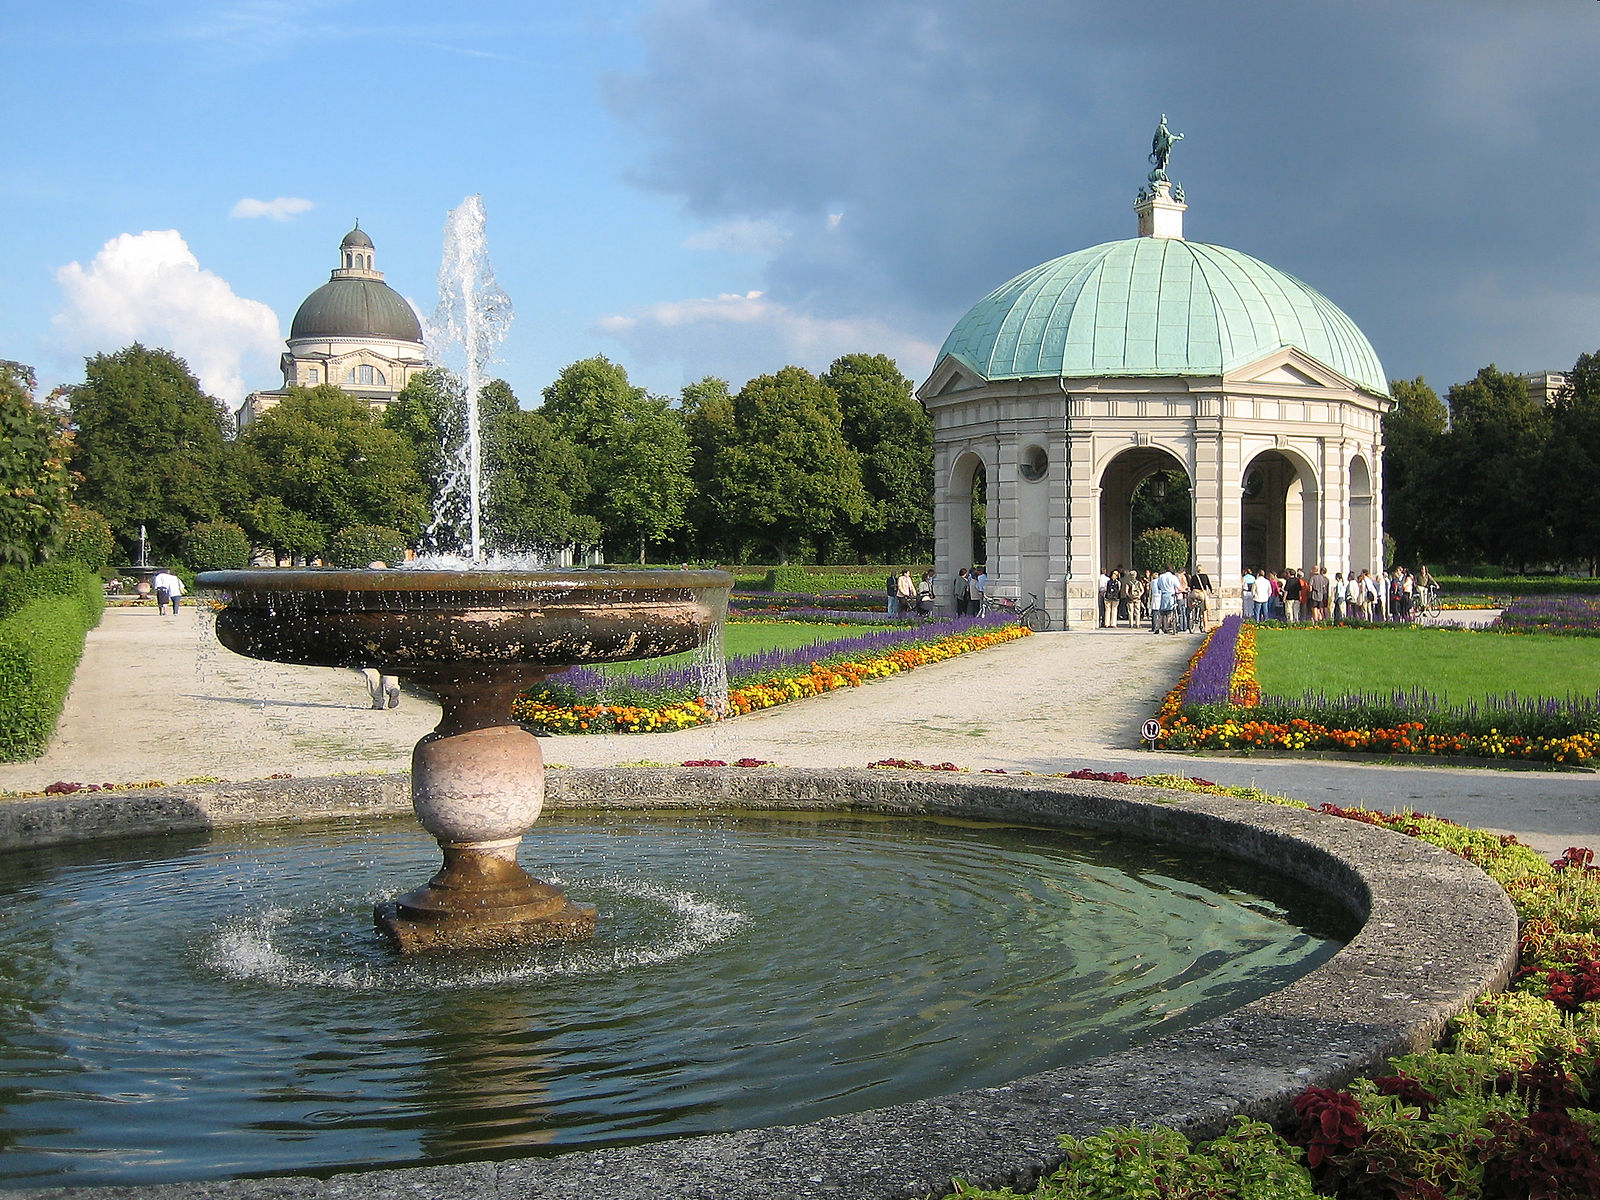 München Hofgartentempel - Garden built in 1613–1617 by Maximilian I, in the style of Italian Renaissance garden -  Credits to Ikiwaner